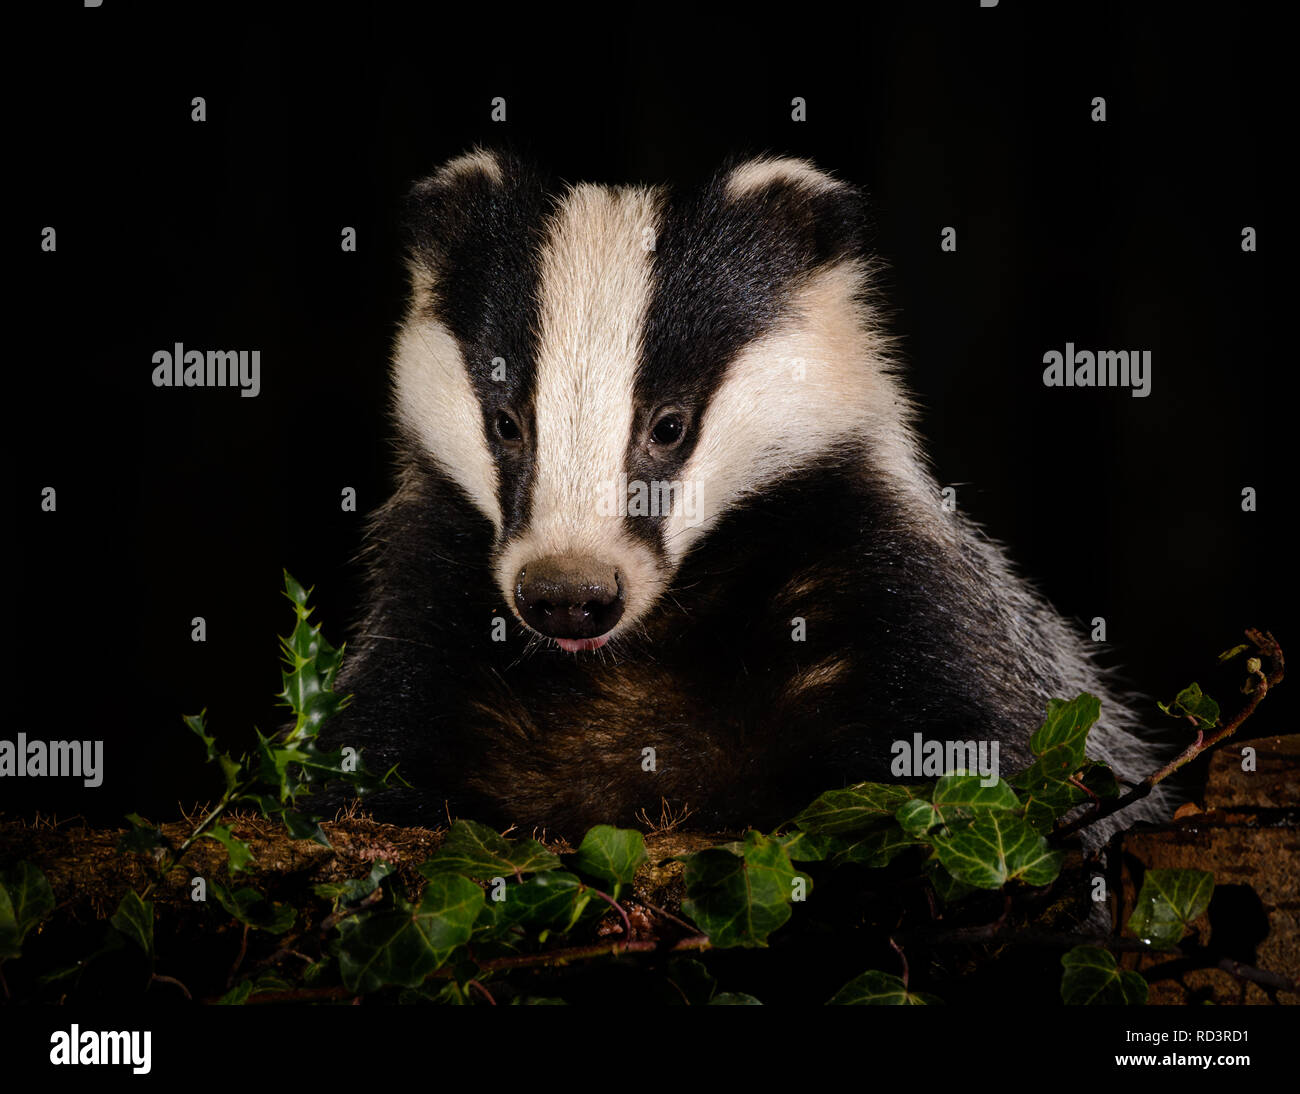 An Iconic Wild Badger in Sheffield, U.K. Badgers have been heavily persecuted in recent times but are amazing to see, very shy and elusive. - Stock Image